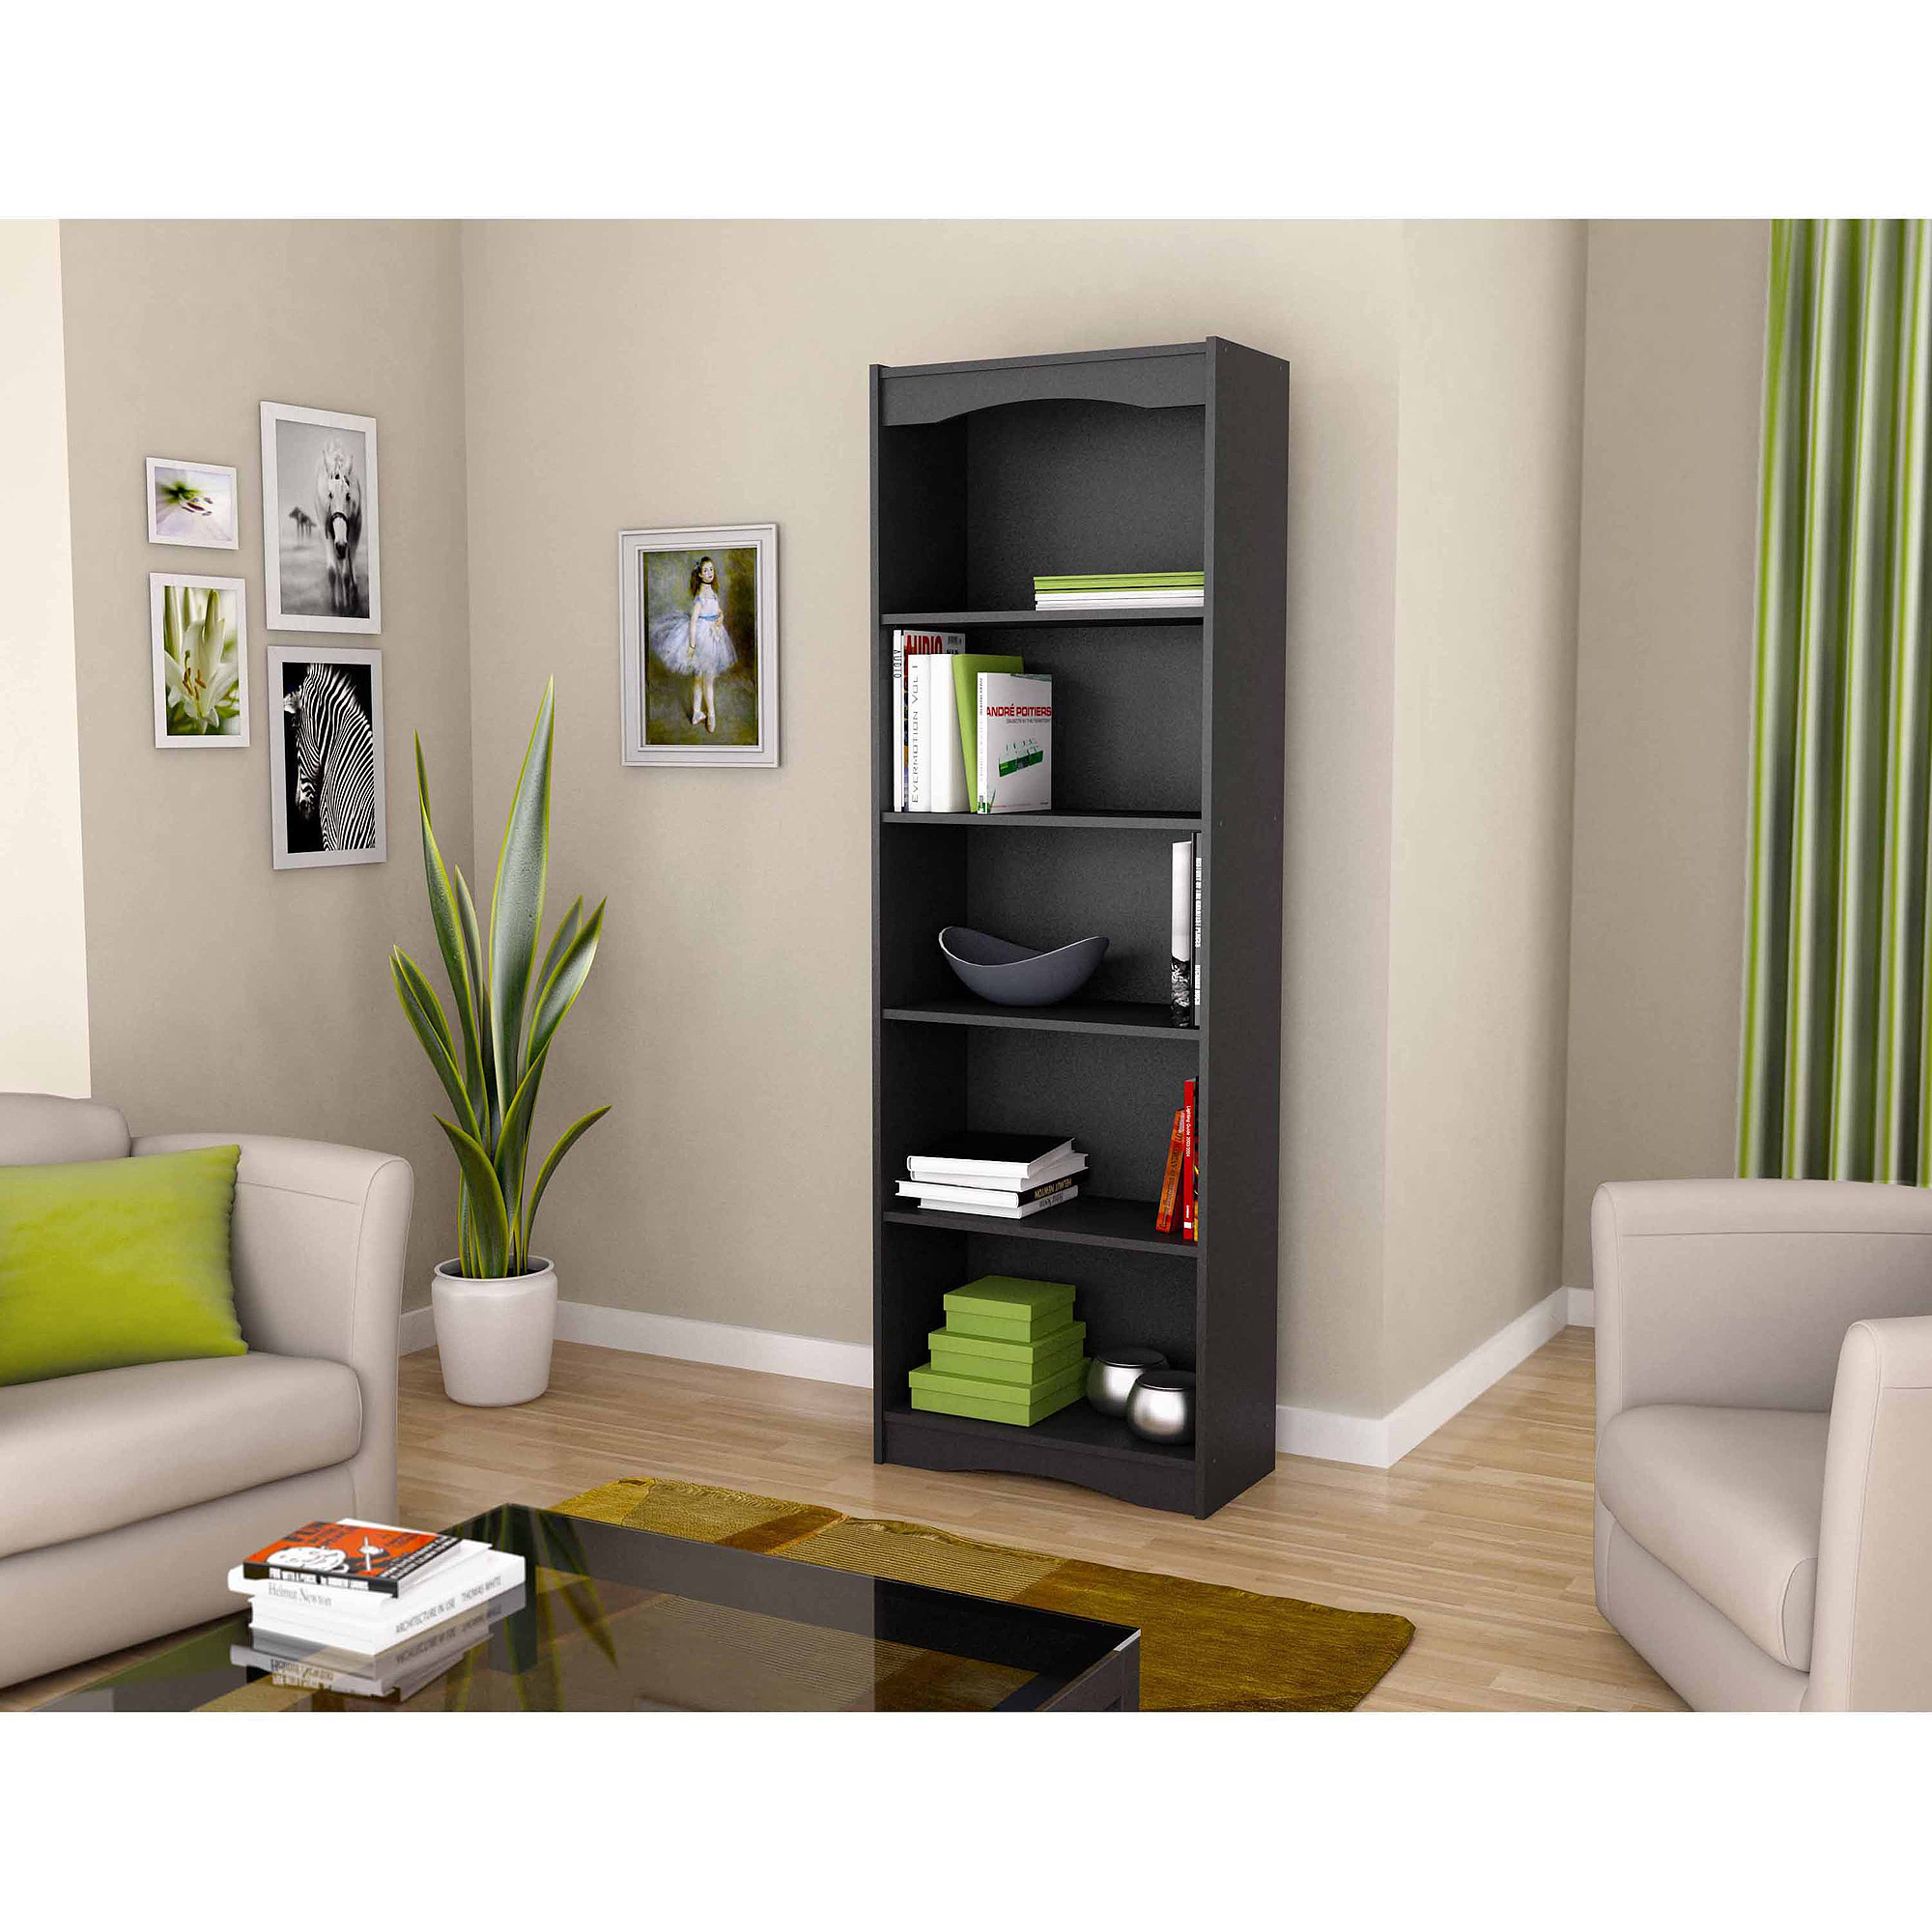 "Sonax S-217-NHL Hawthorn 72"" Tall Bookcase, Multiple Colors"